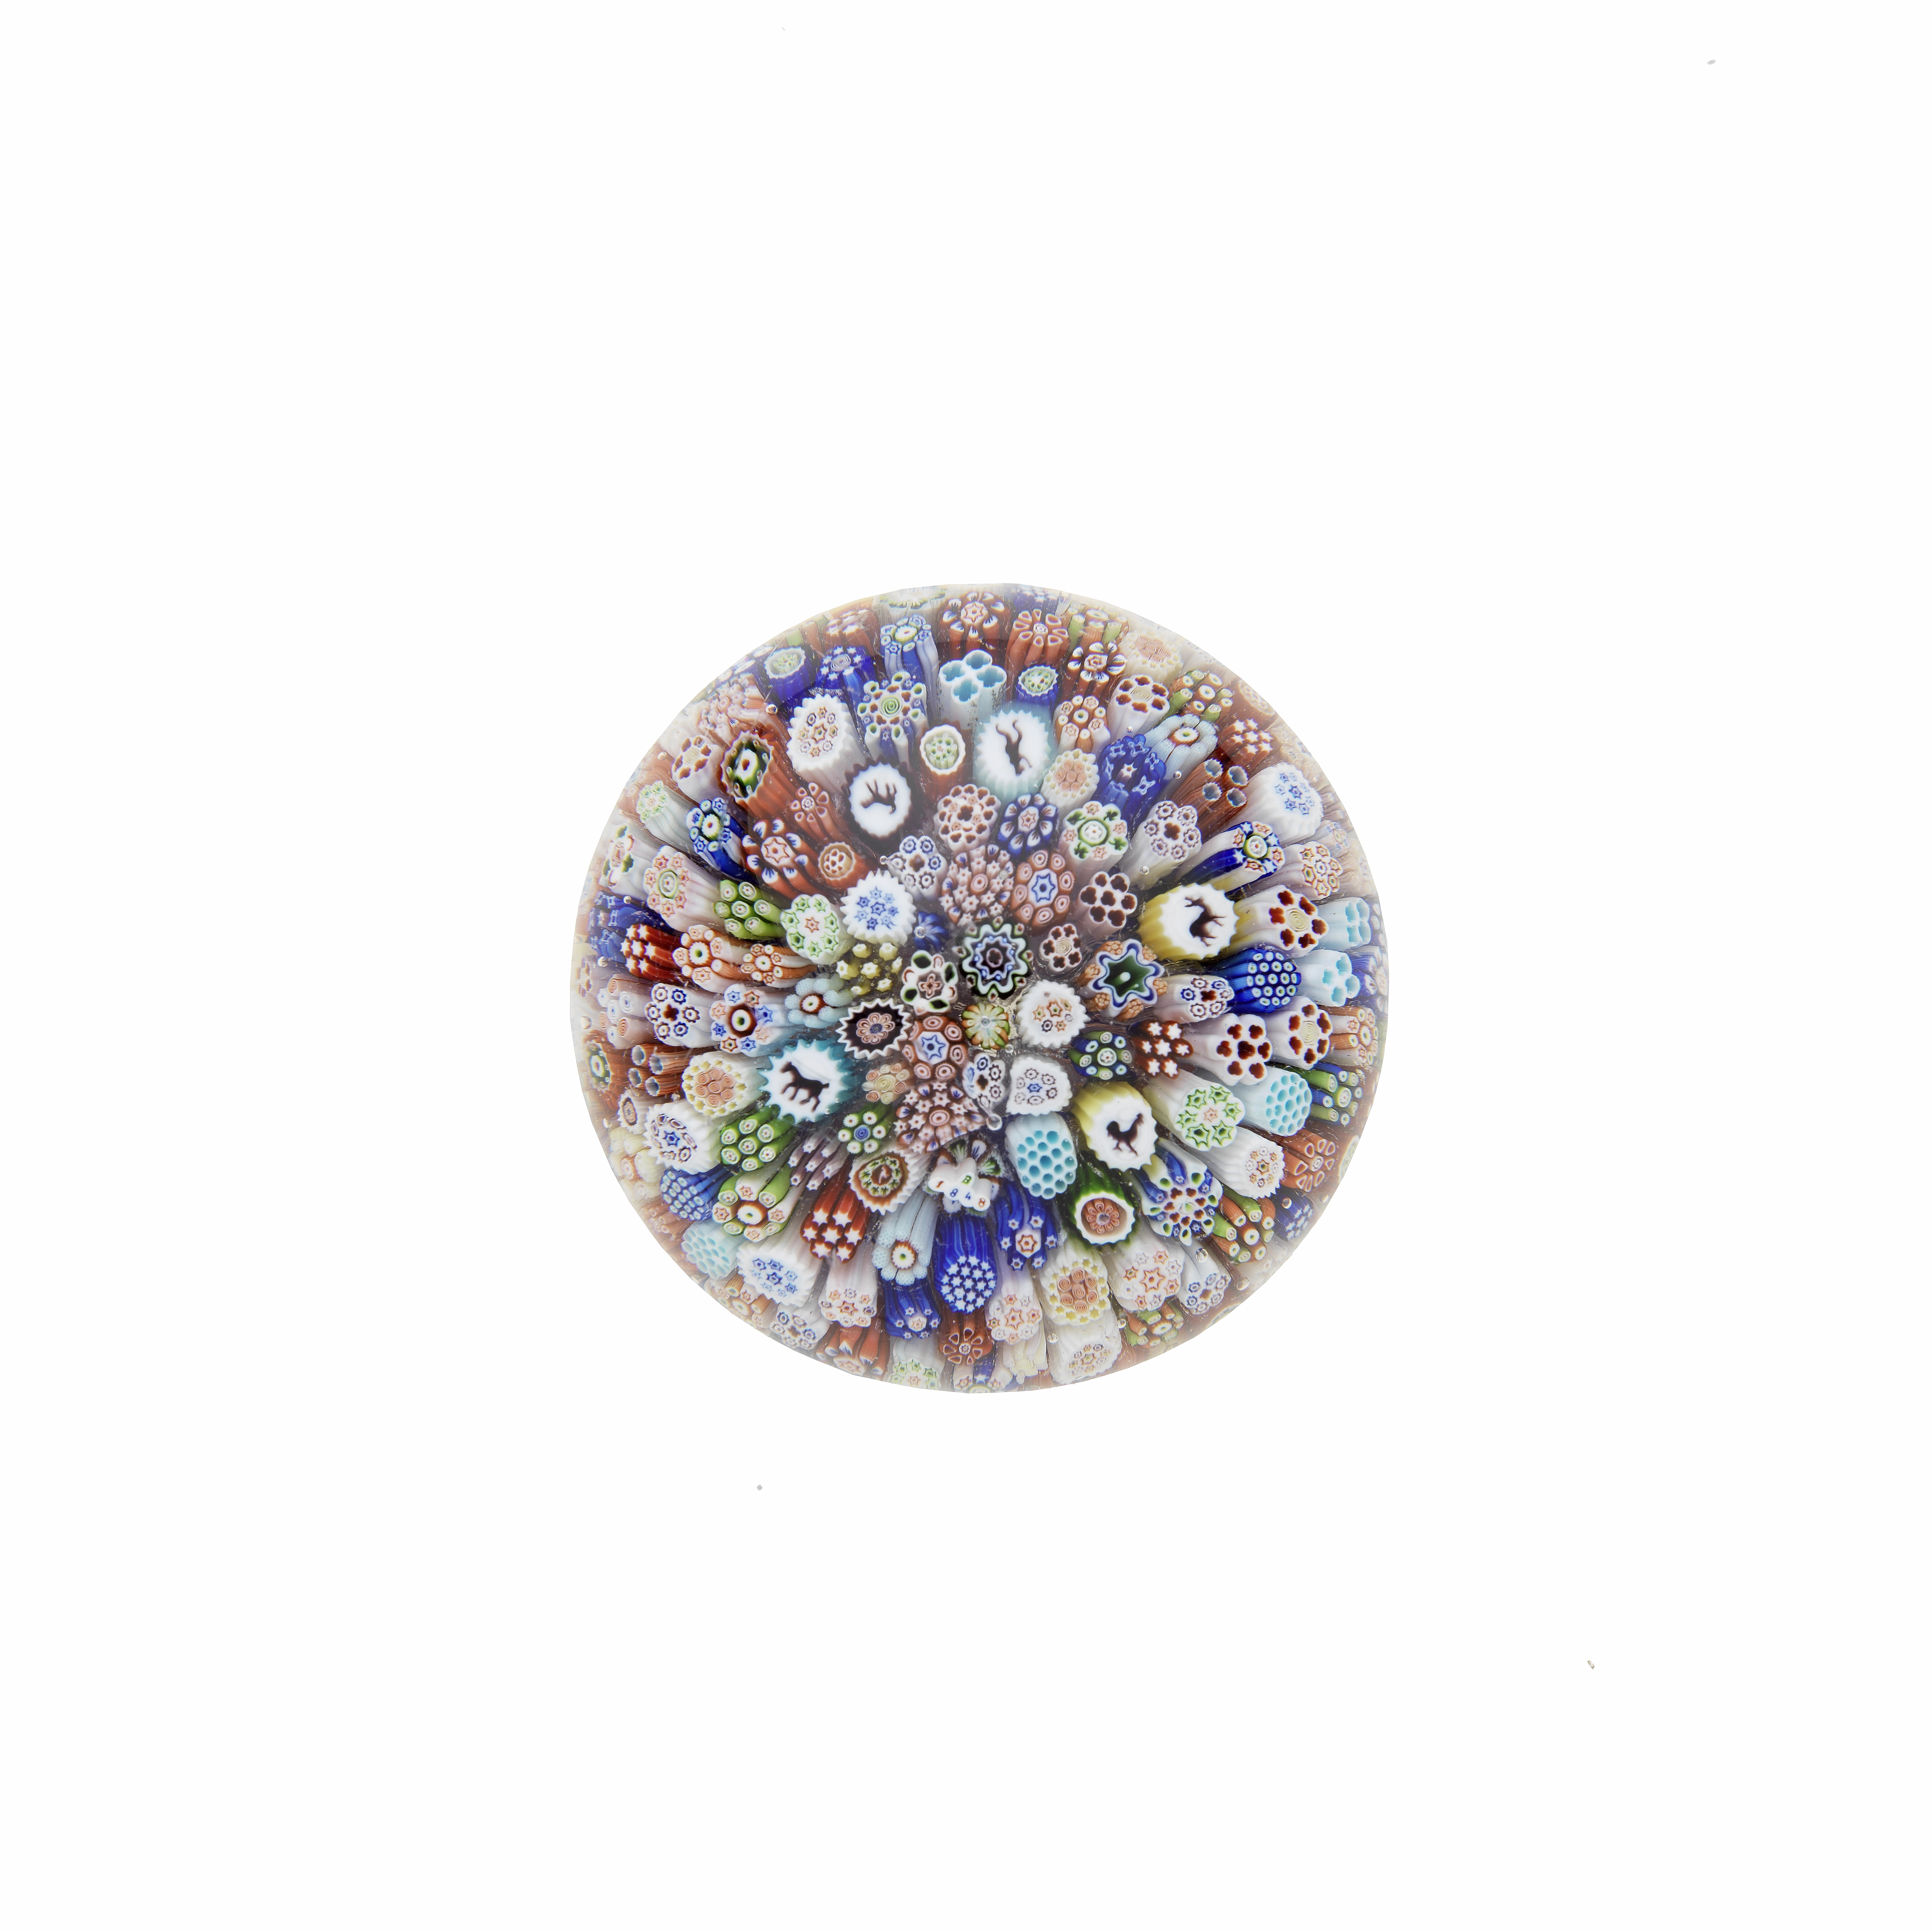 A Baccarat close-packed millefiori paperweight, dated 1848